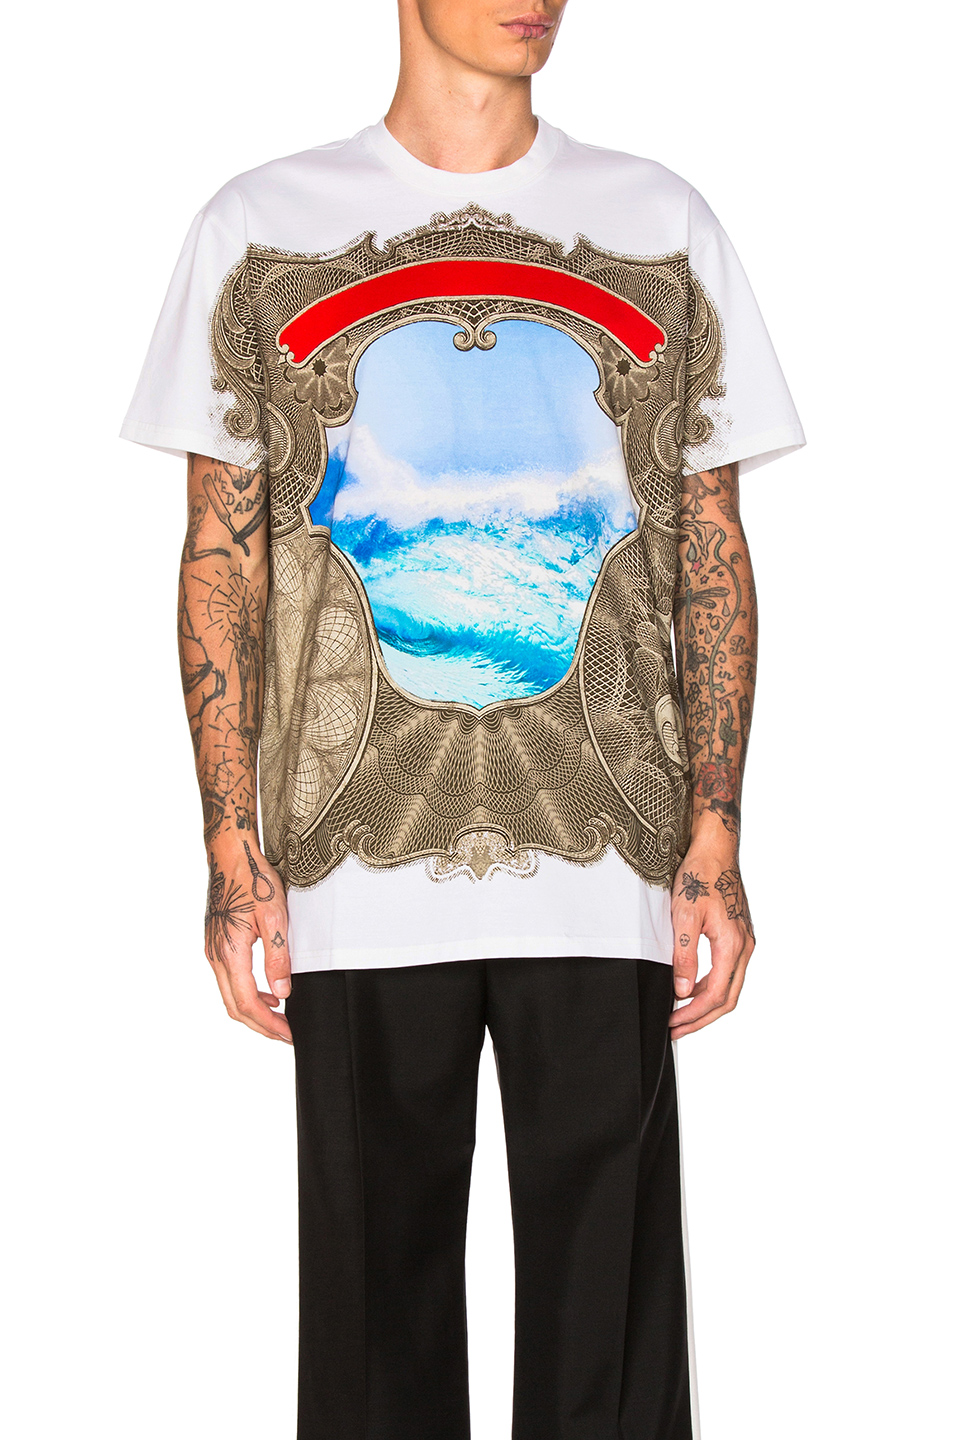 Givenchy Wave Print Tee in Blue,Brown,Neutral,White